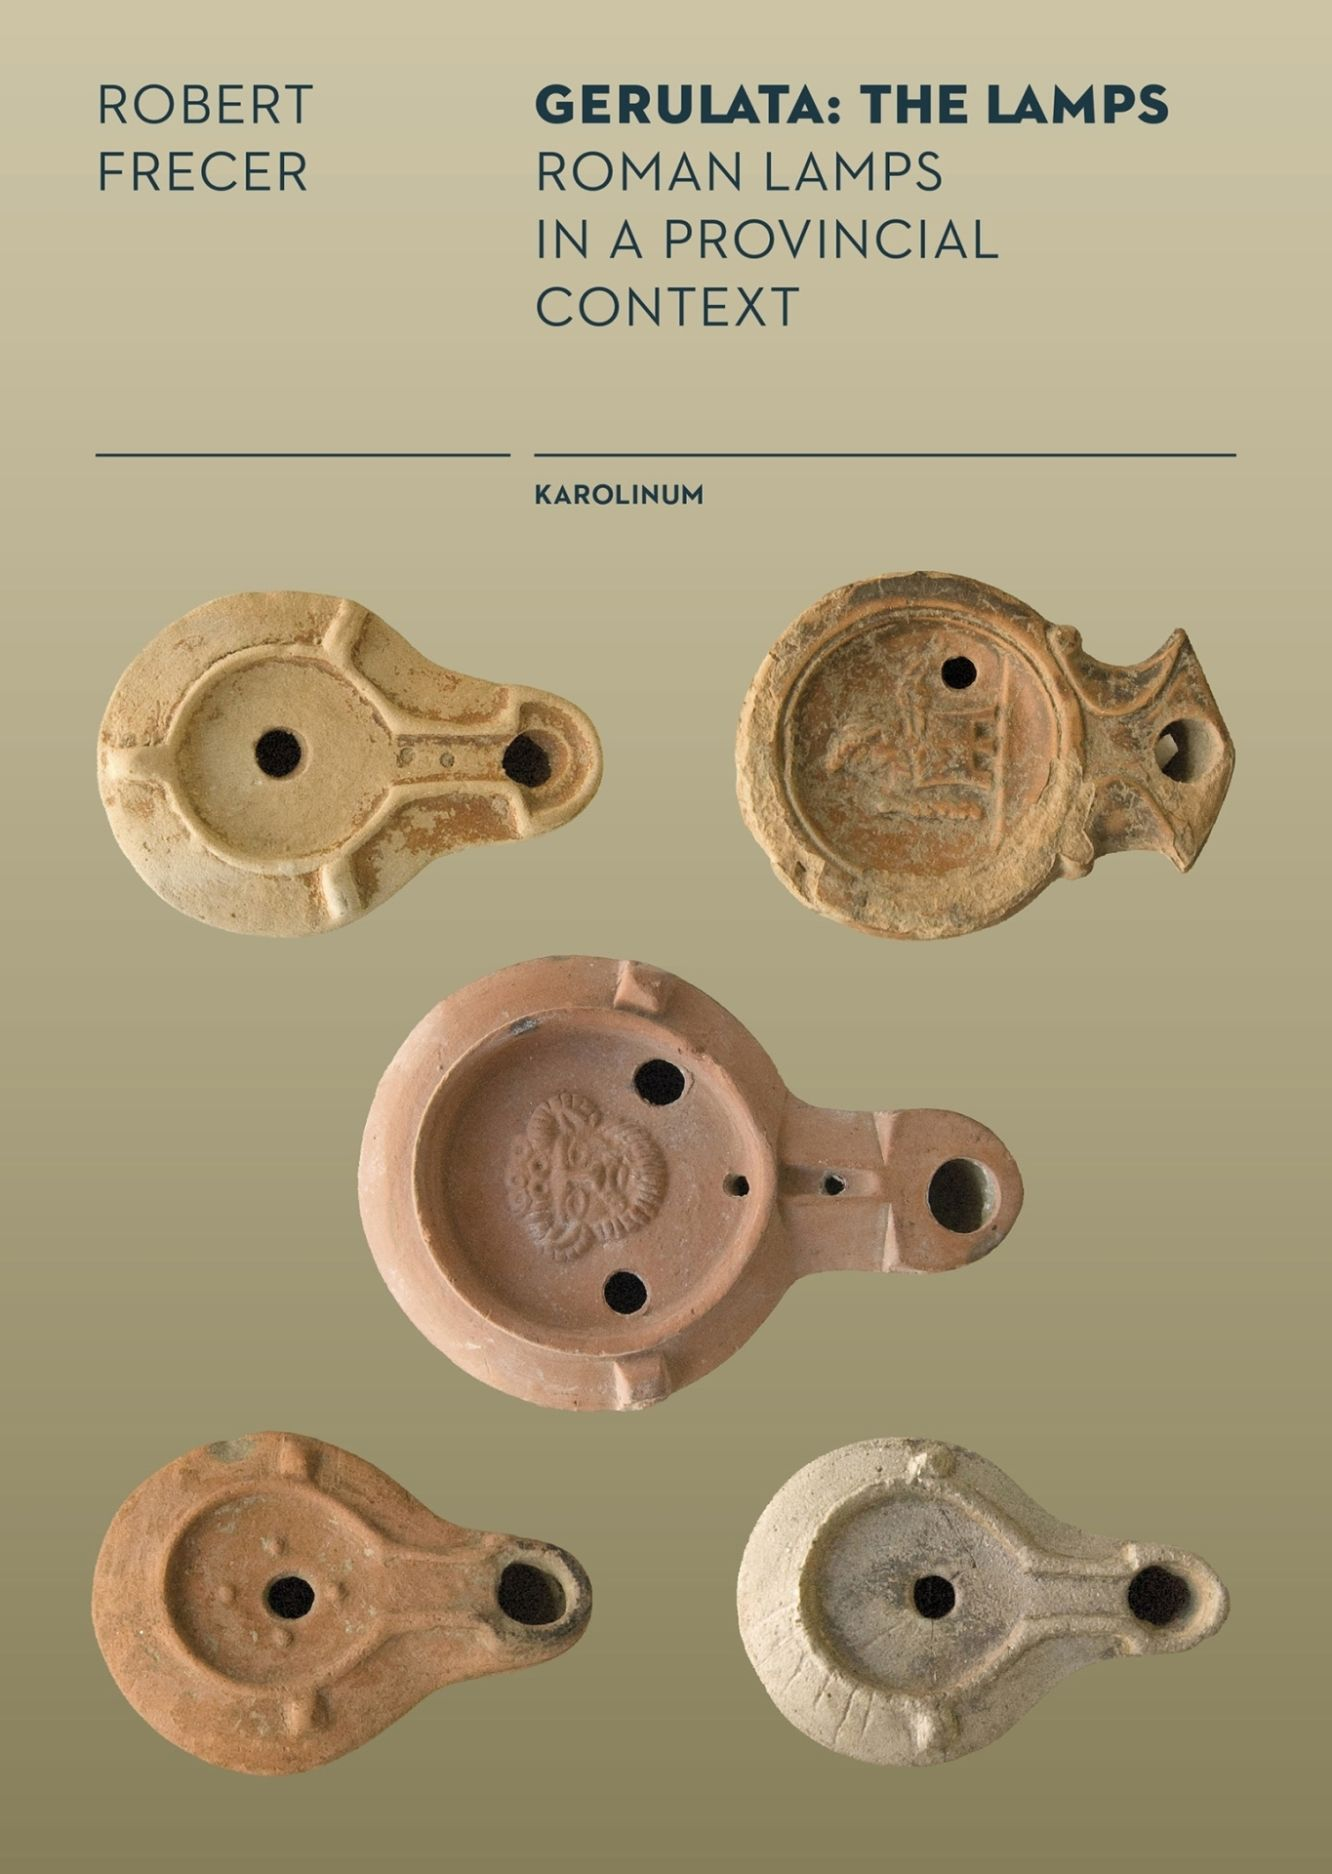 Gerulata: The Lamps: A Survey of Roman Lamps in Pannonia